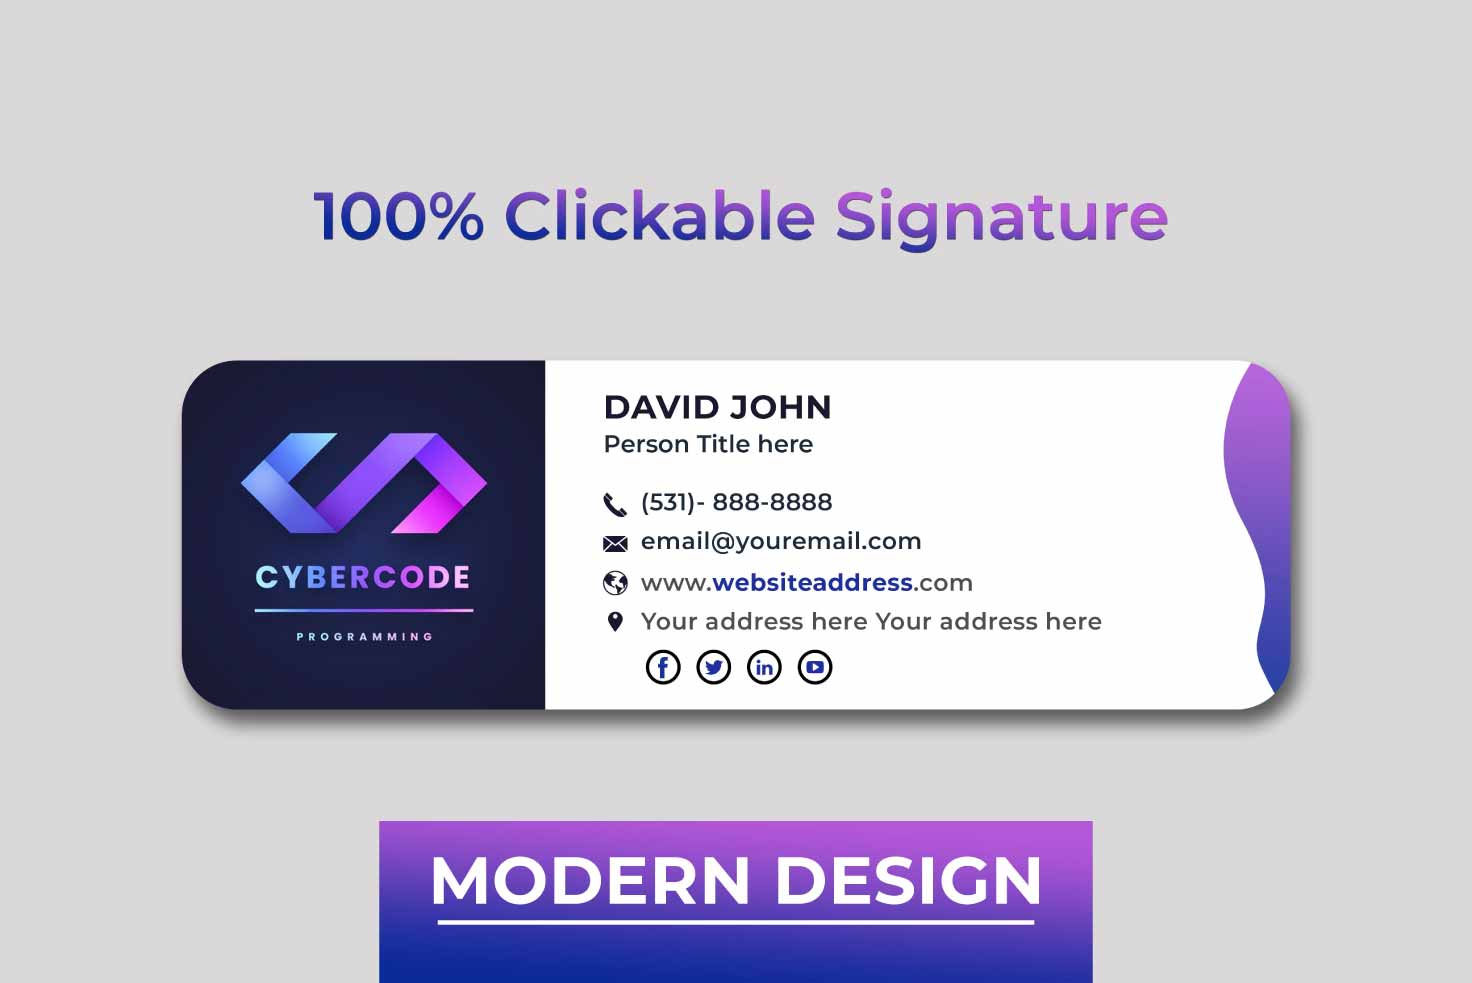 I will design clickable HTML email signature for you